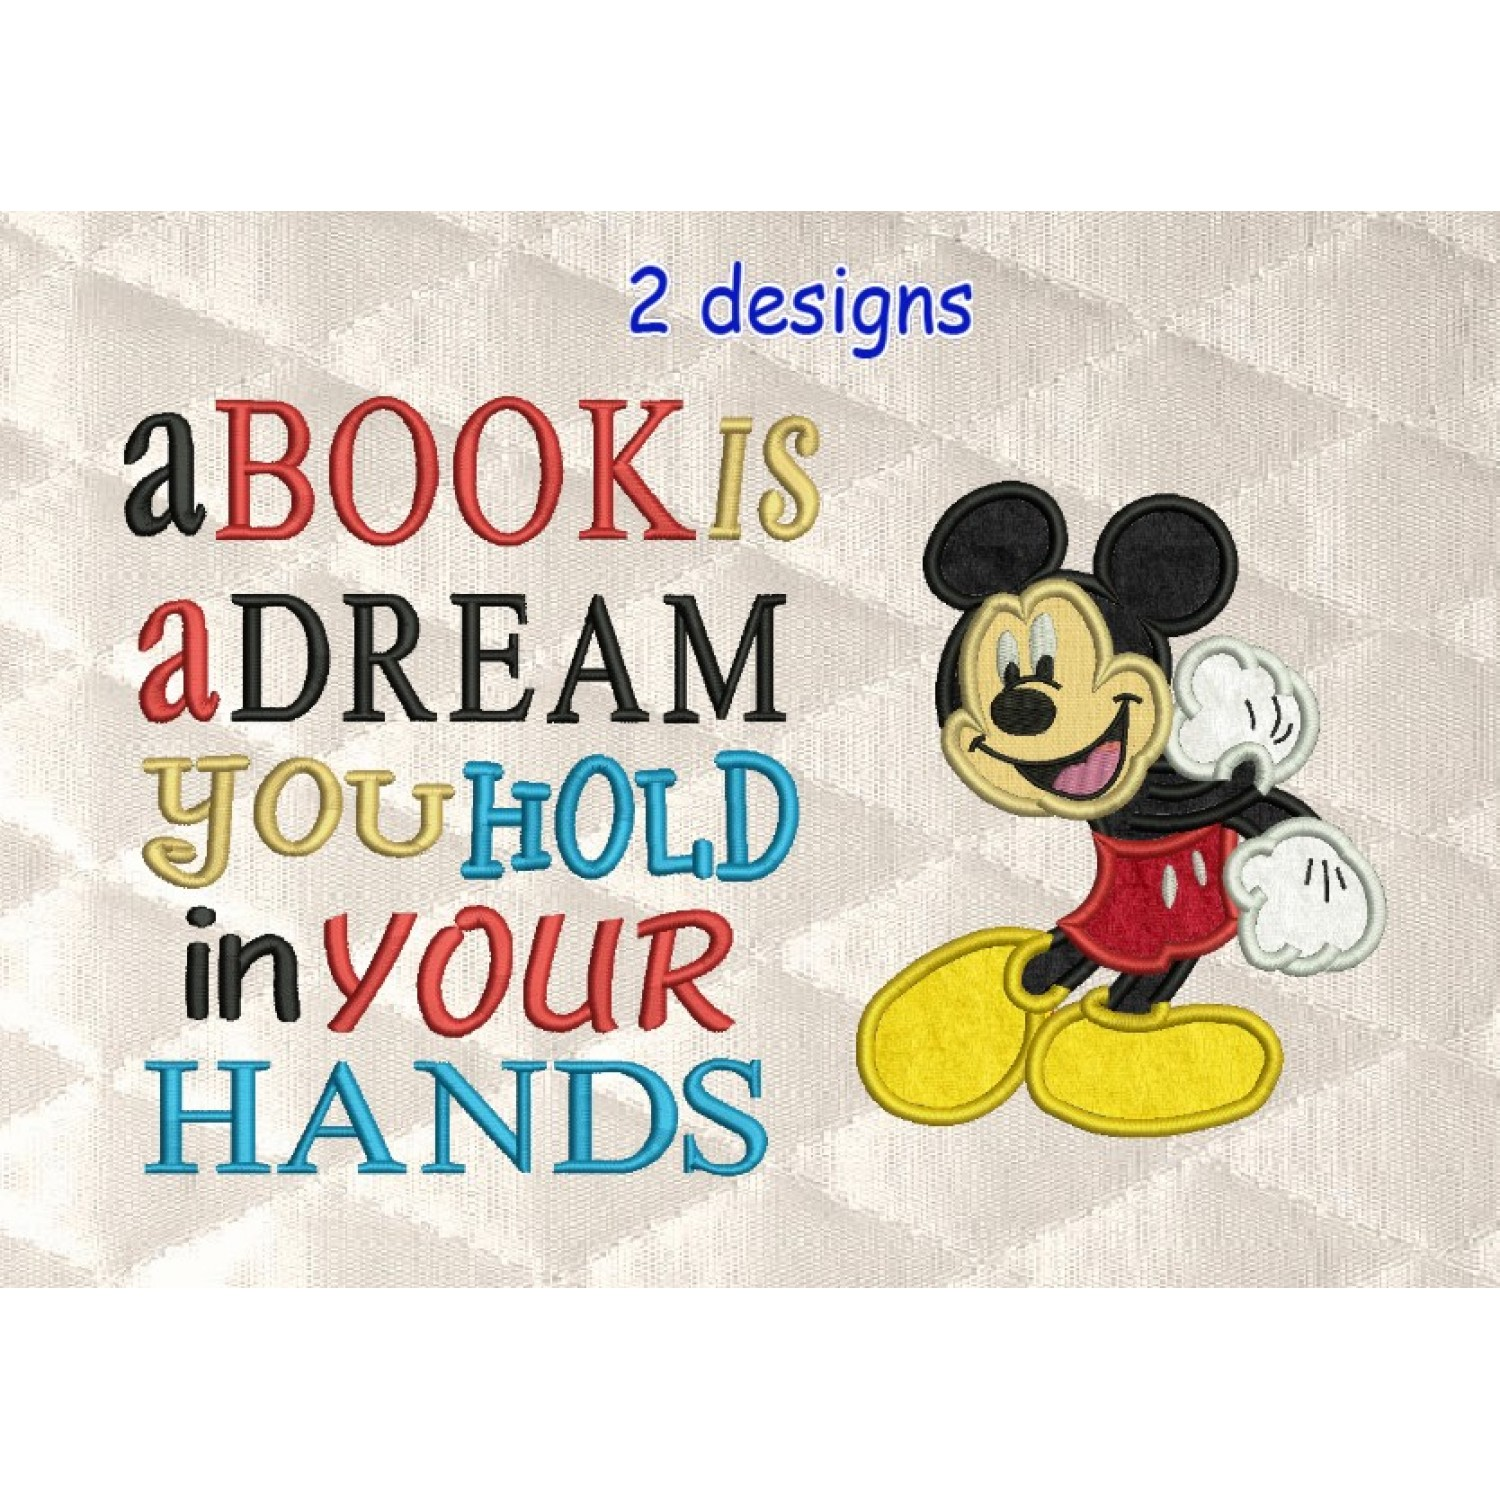 Mickey Mouse with a book is a dream designs